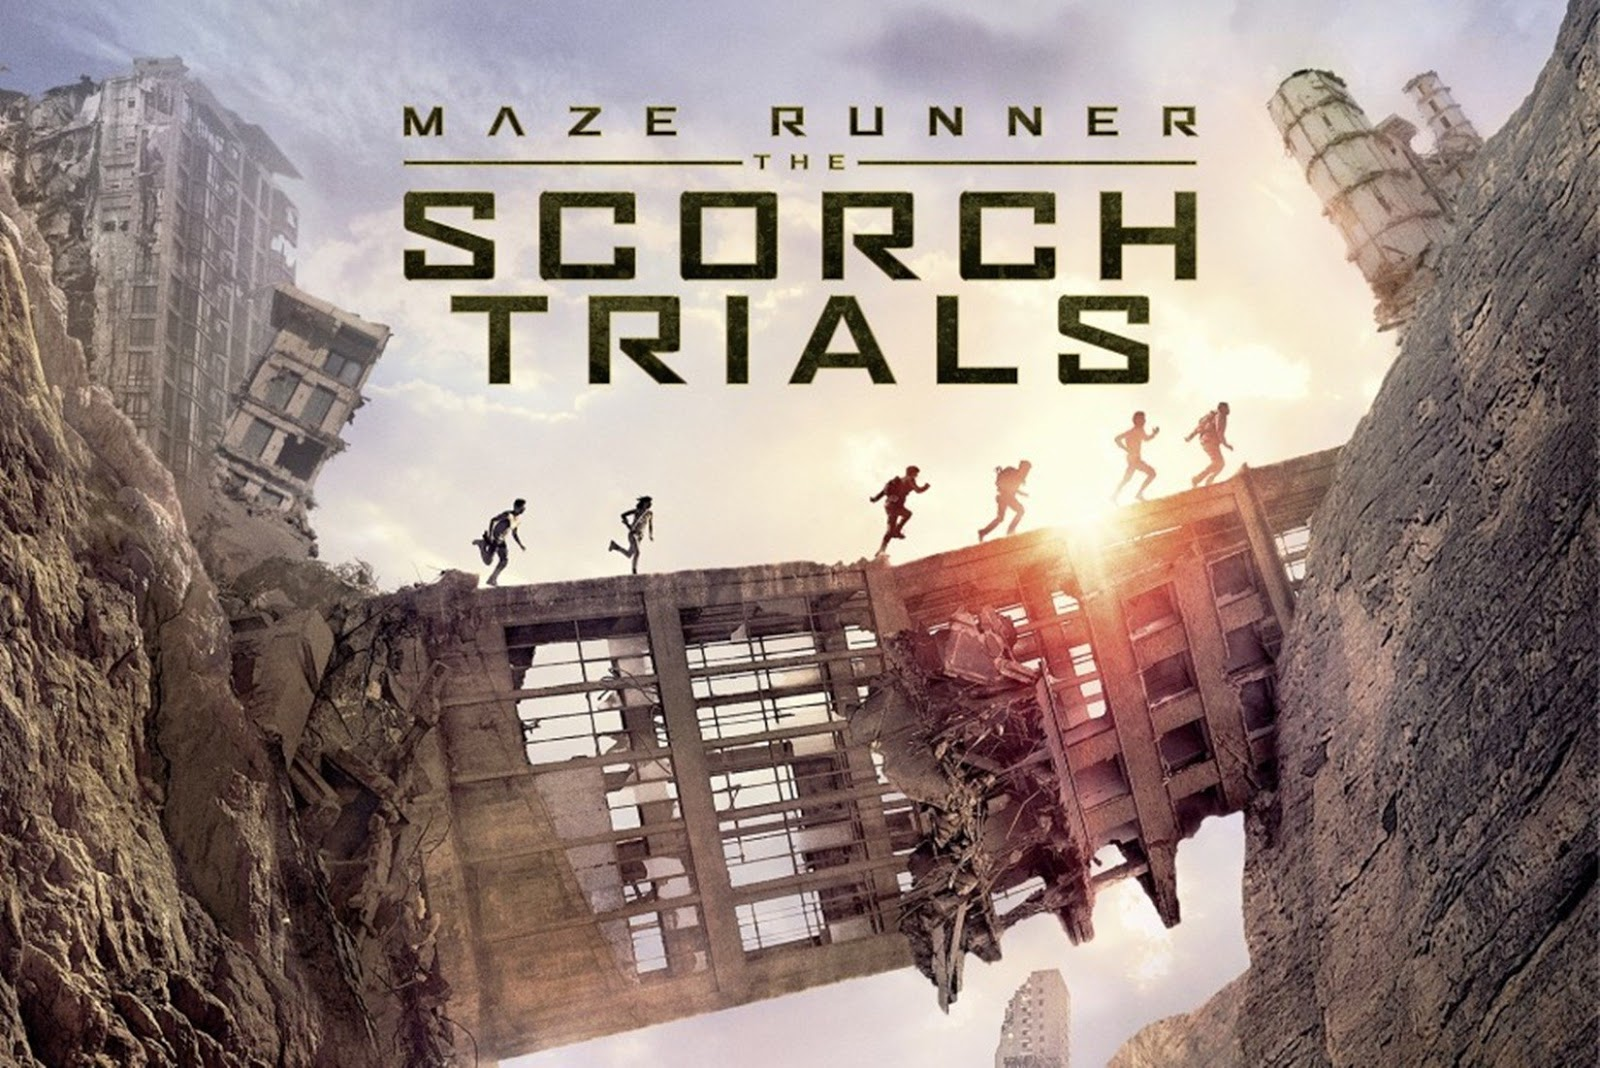 Free download bluray 1080p 720p movie google drive The Maze Runner 2 Scorch Trials, USA, 2015, Wes Ball, Dylan O'Brien, Kaya Scodelario, Thomas Brodie-Sangster, Ki Hong Lee